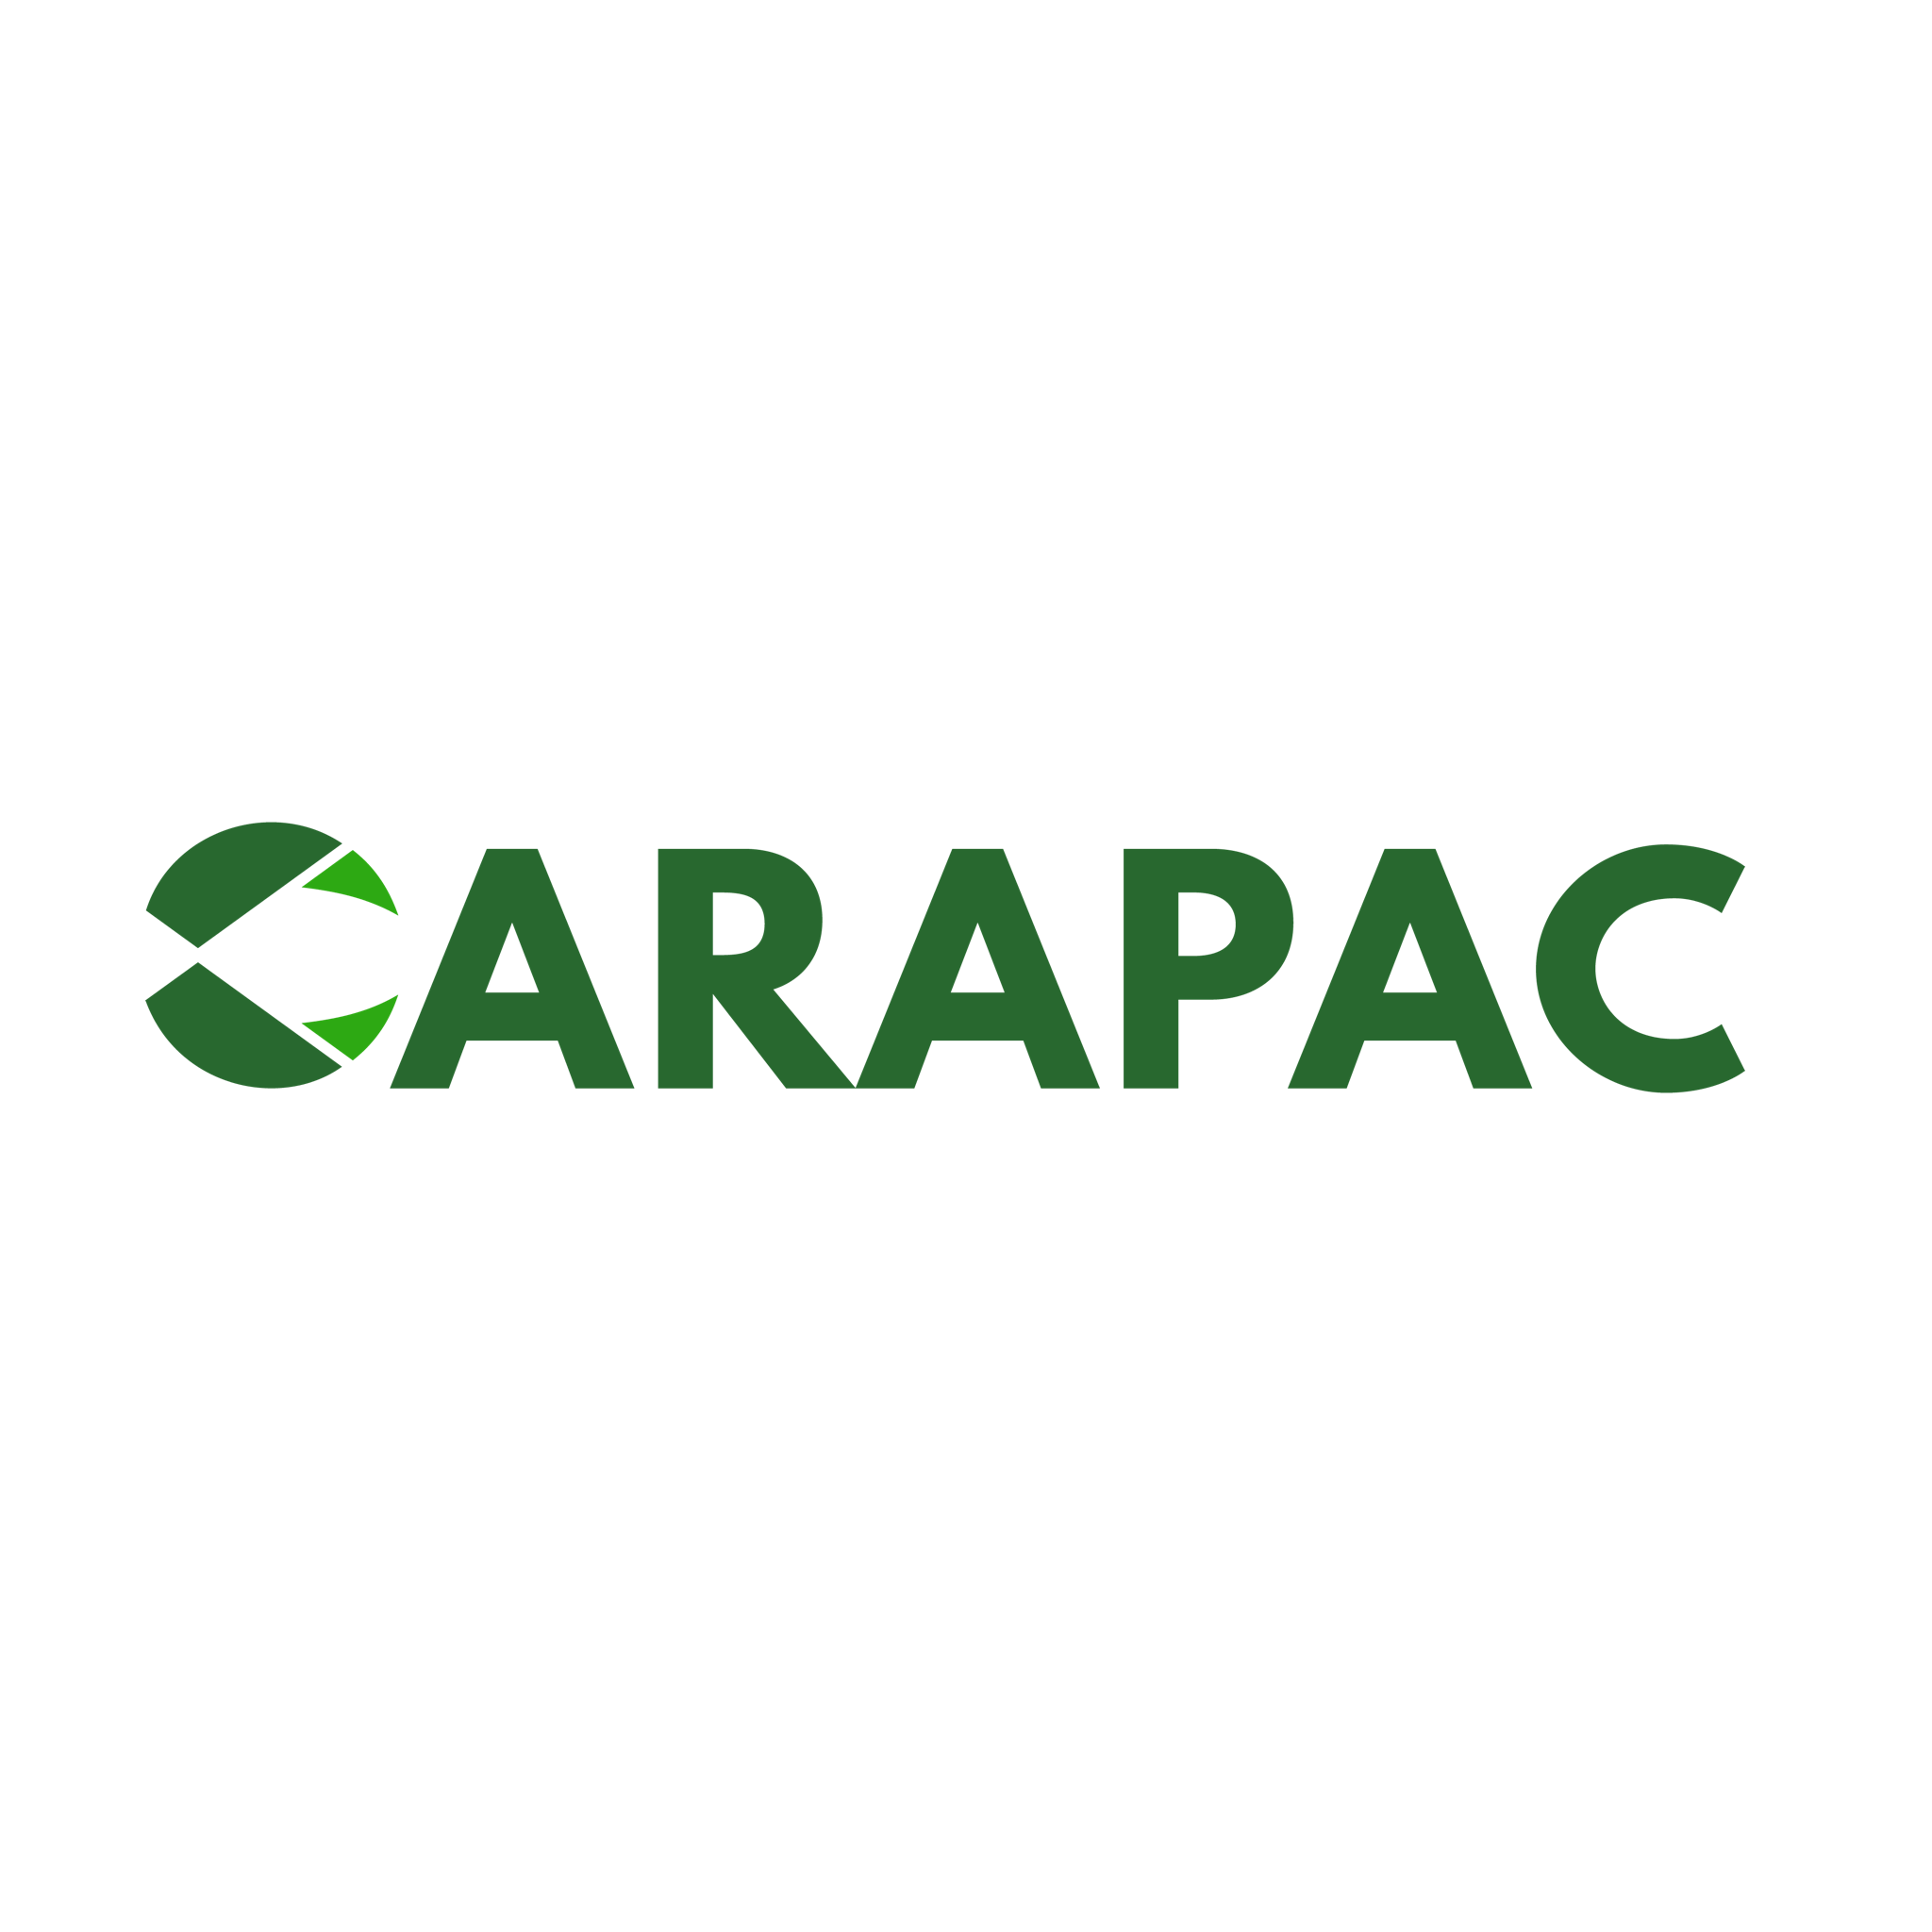 Carapac - Square.png